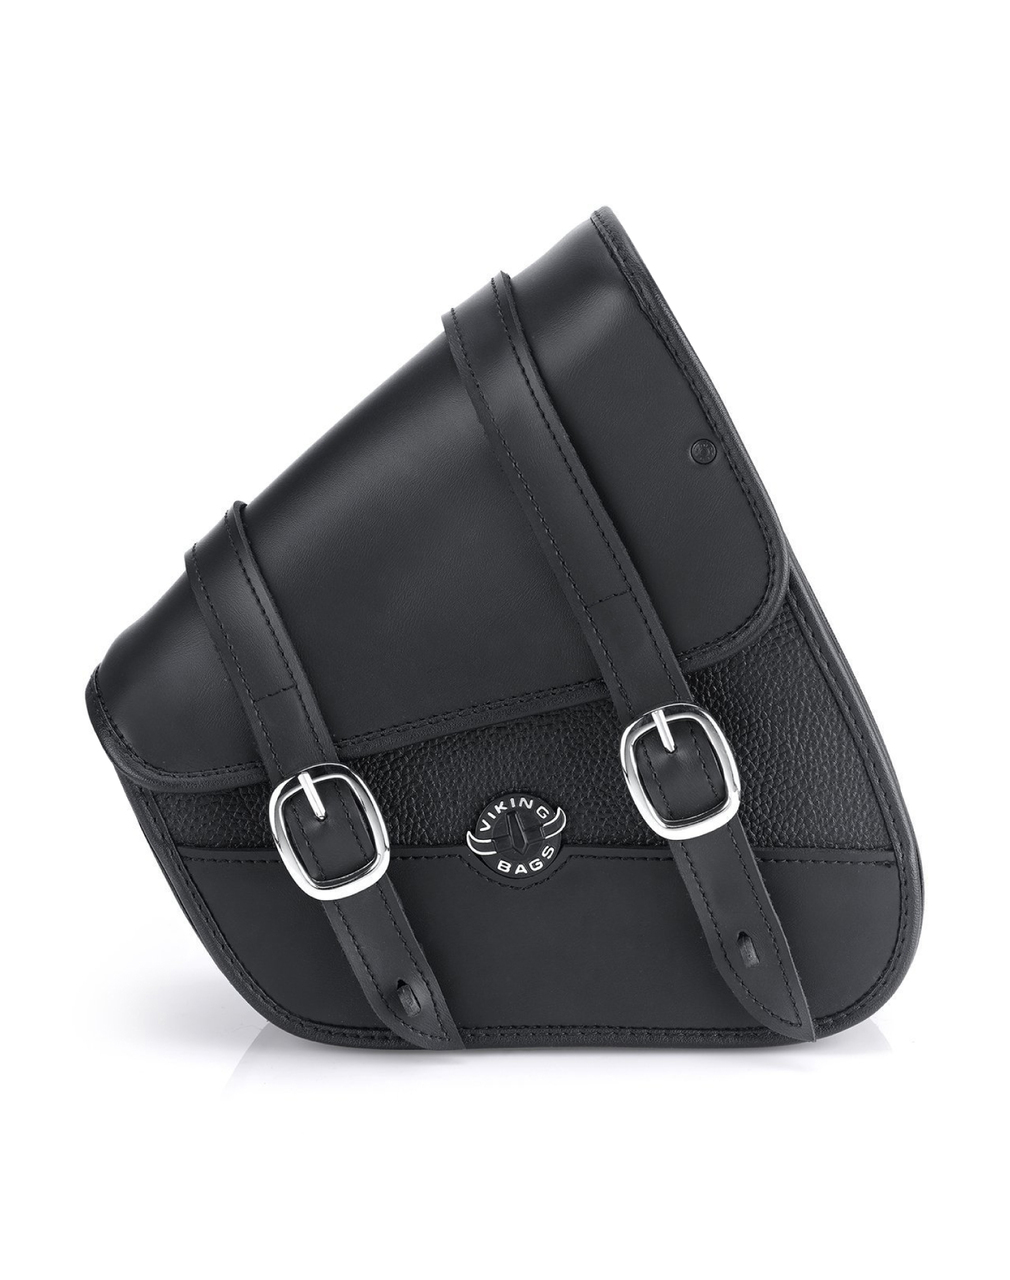 VikingBags Sportster Specific Motorcycle Swing Arm Bag Front View